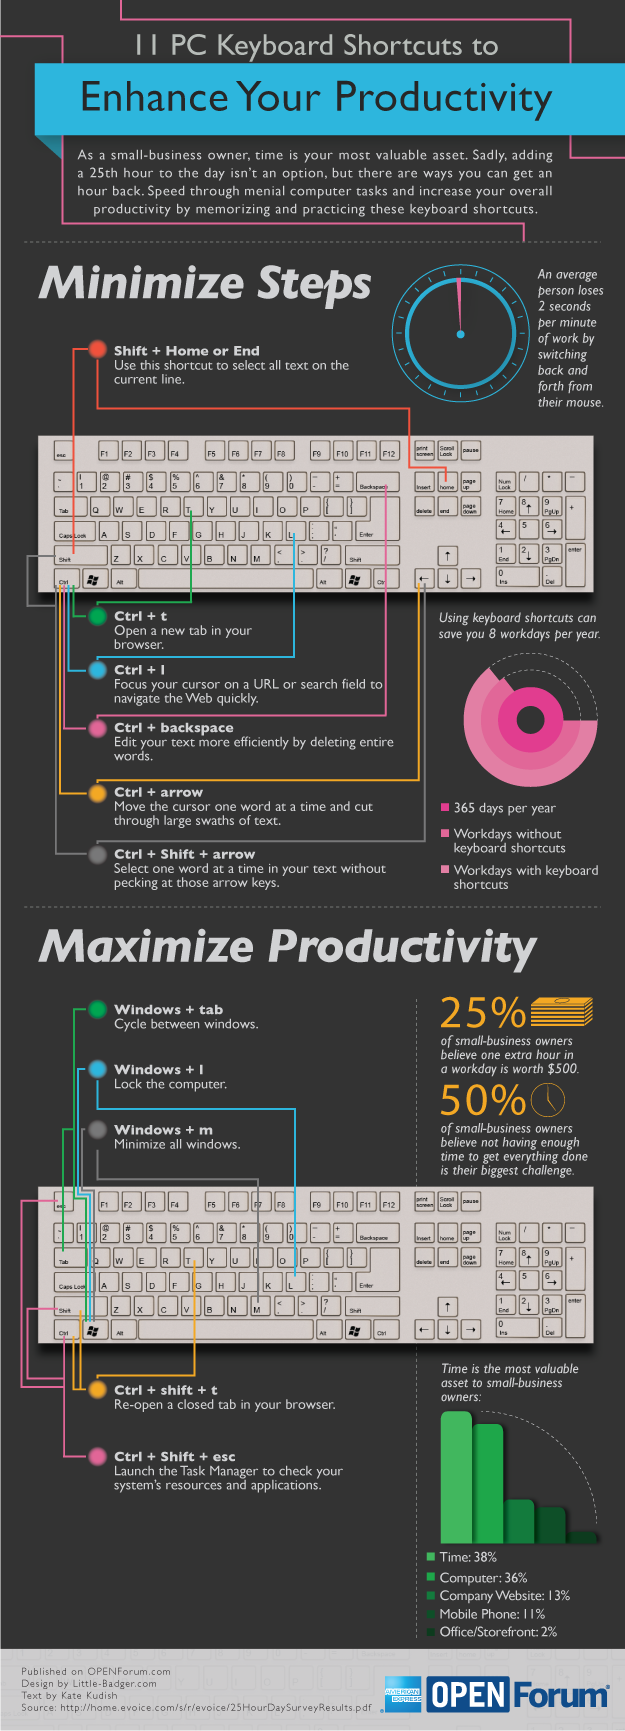 11 PC Keyboard Shortcuts to Enhance Your Productivity - #infographic For small businesses